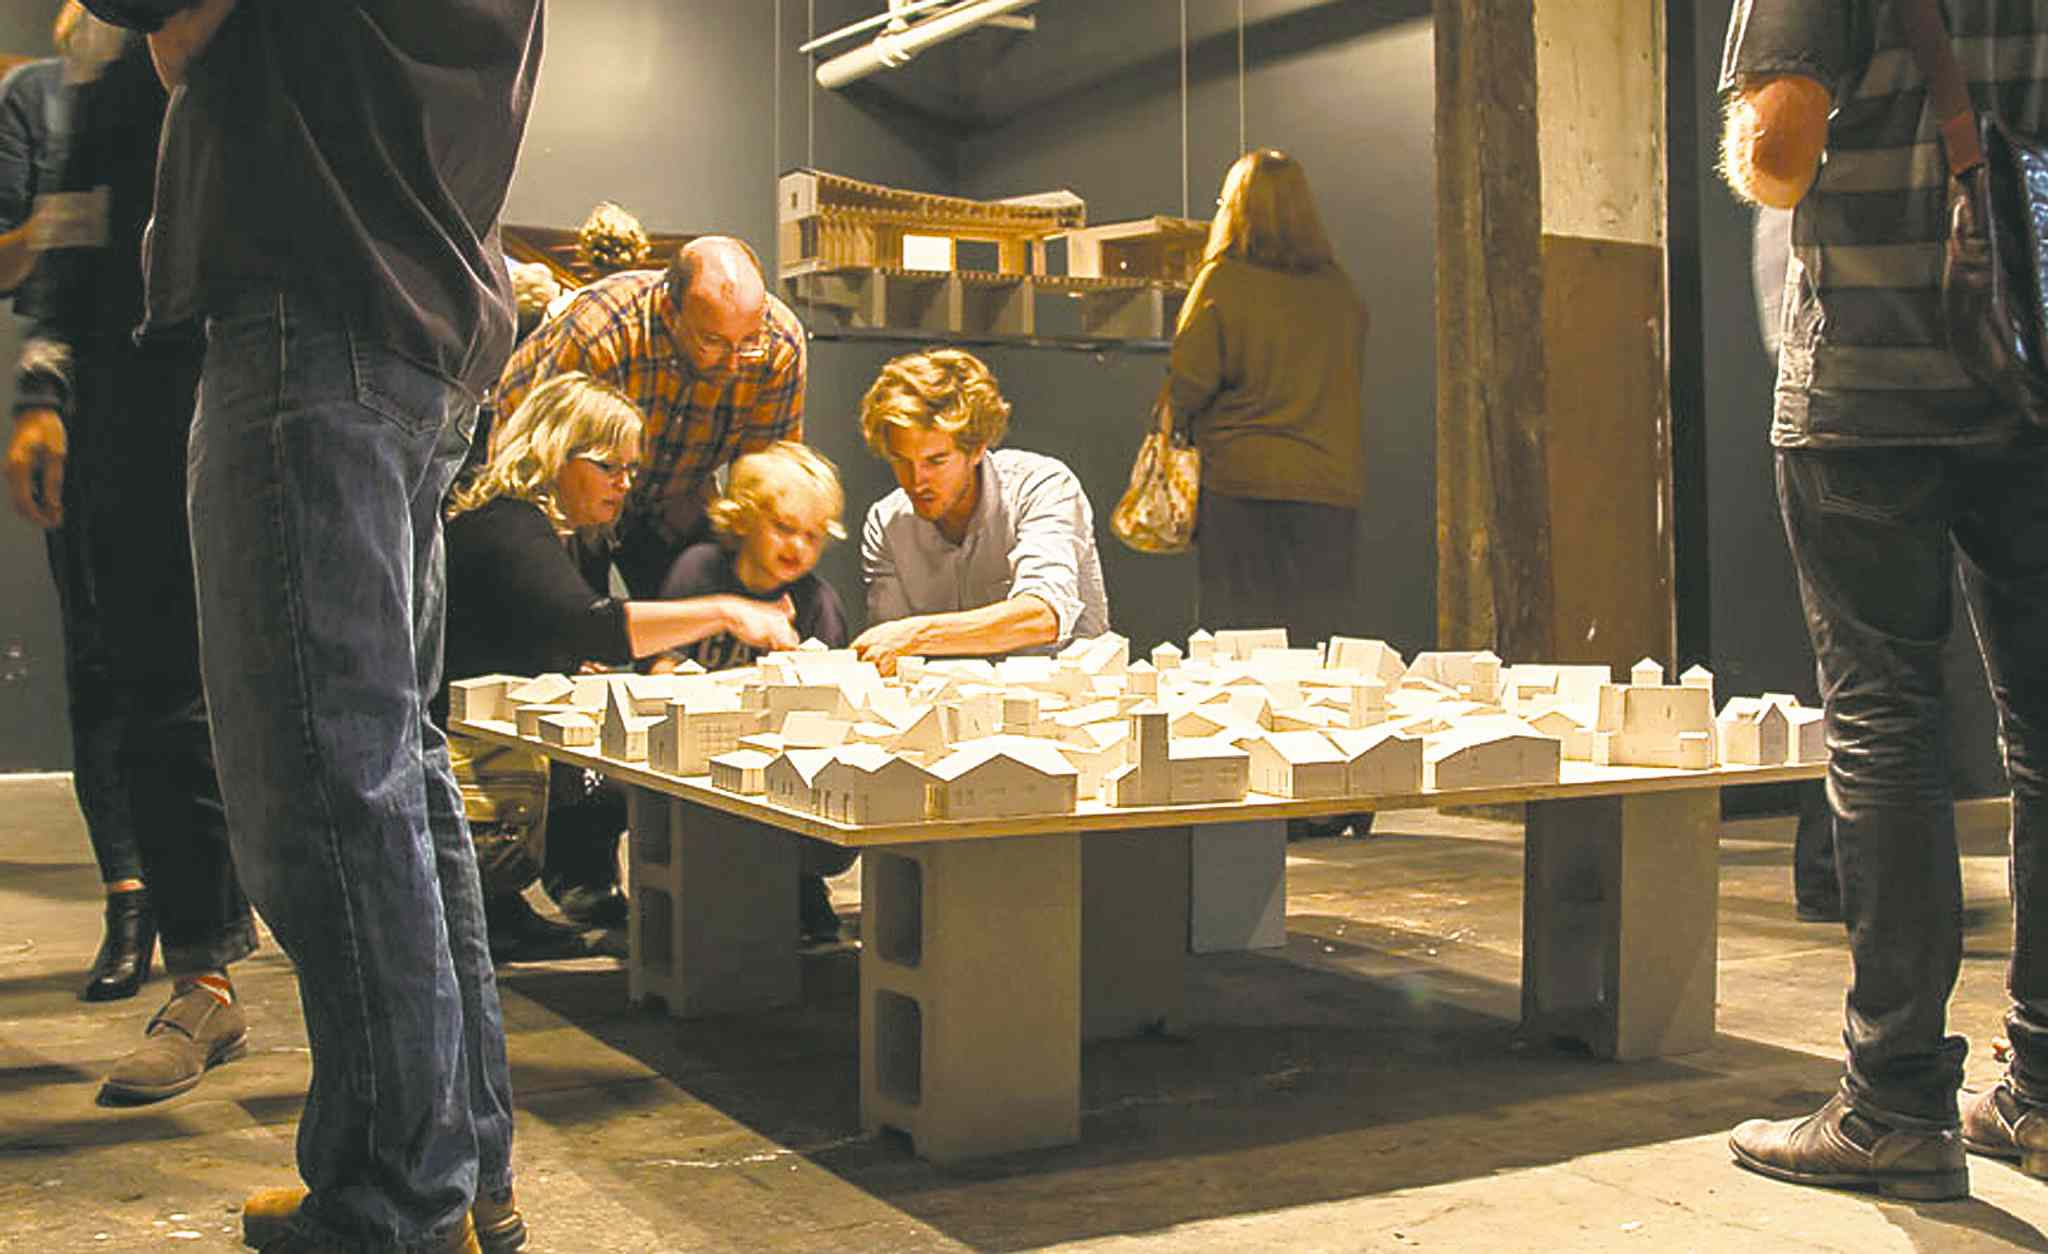 Visitors explore the plaster building forms in the centre of the gallery.